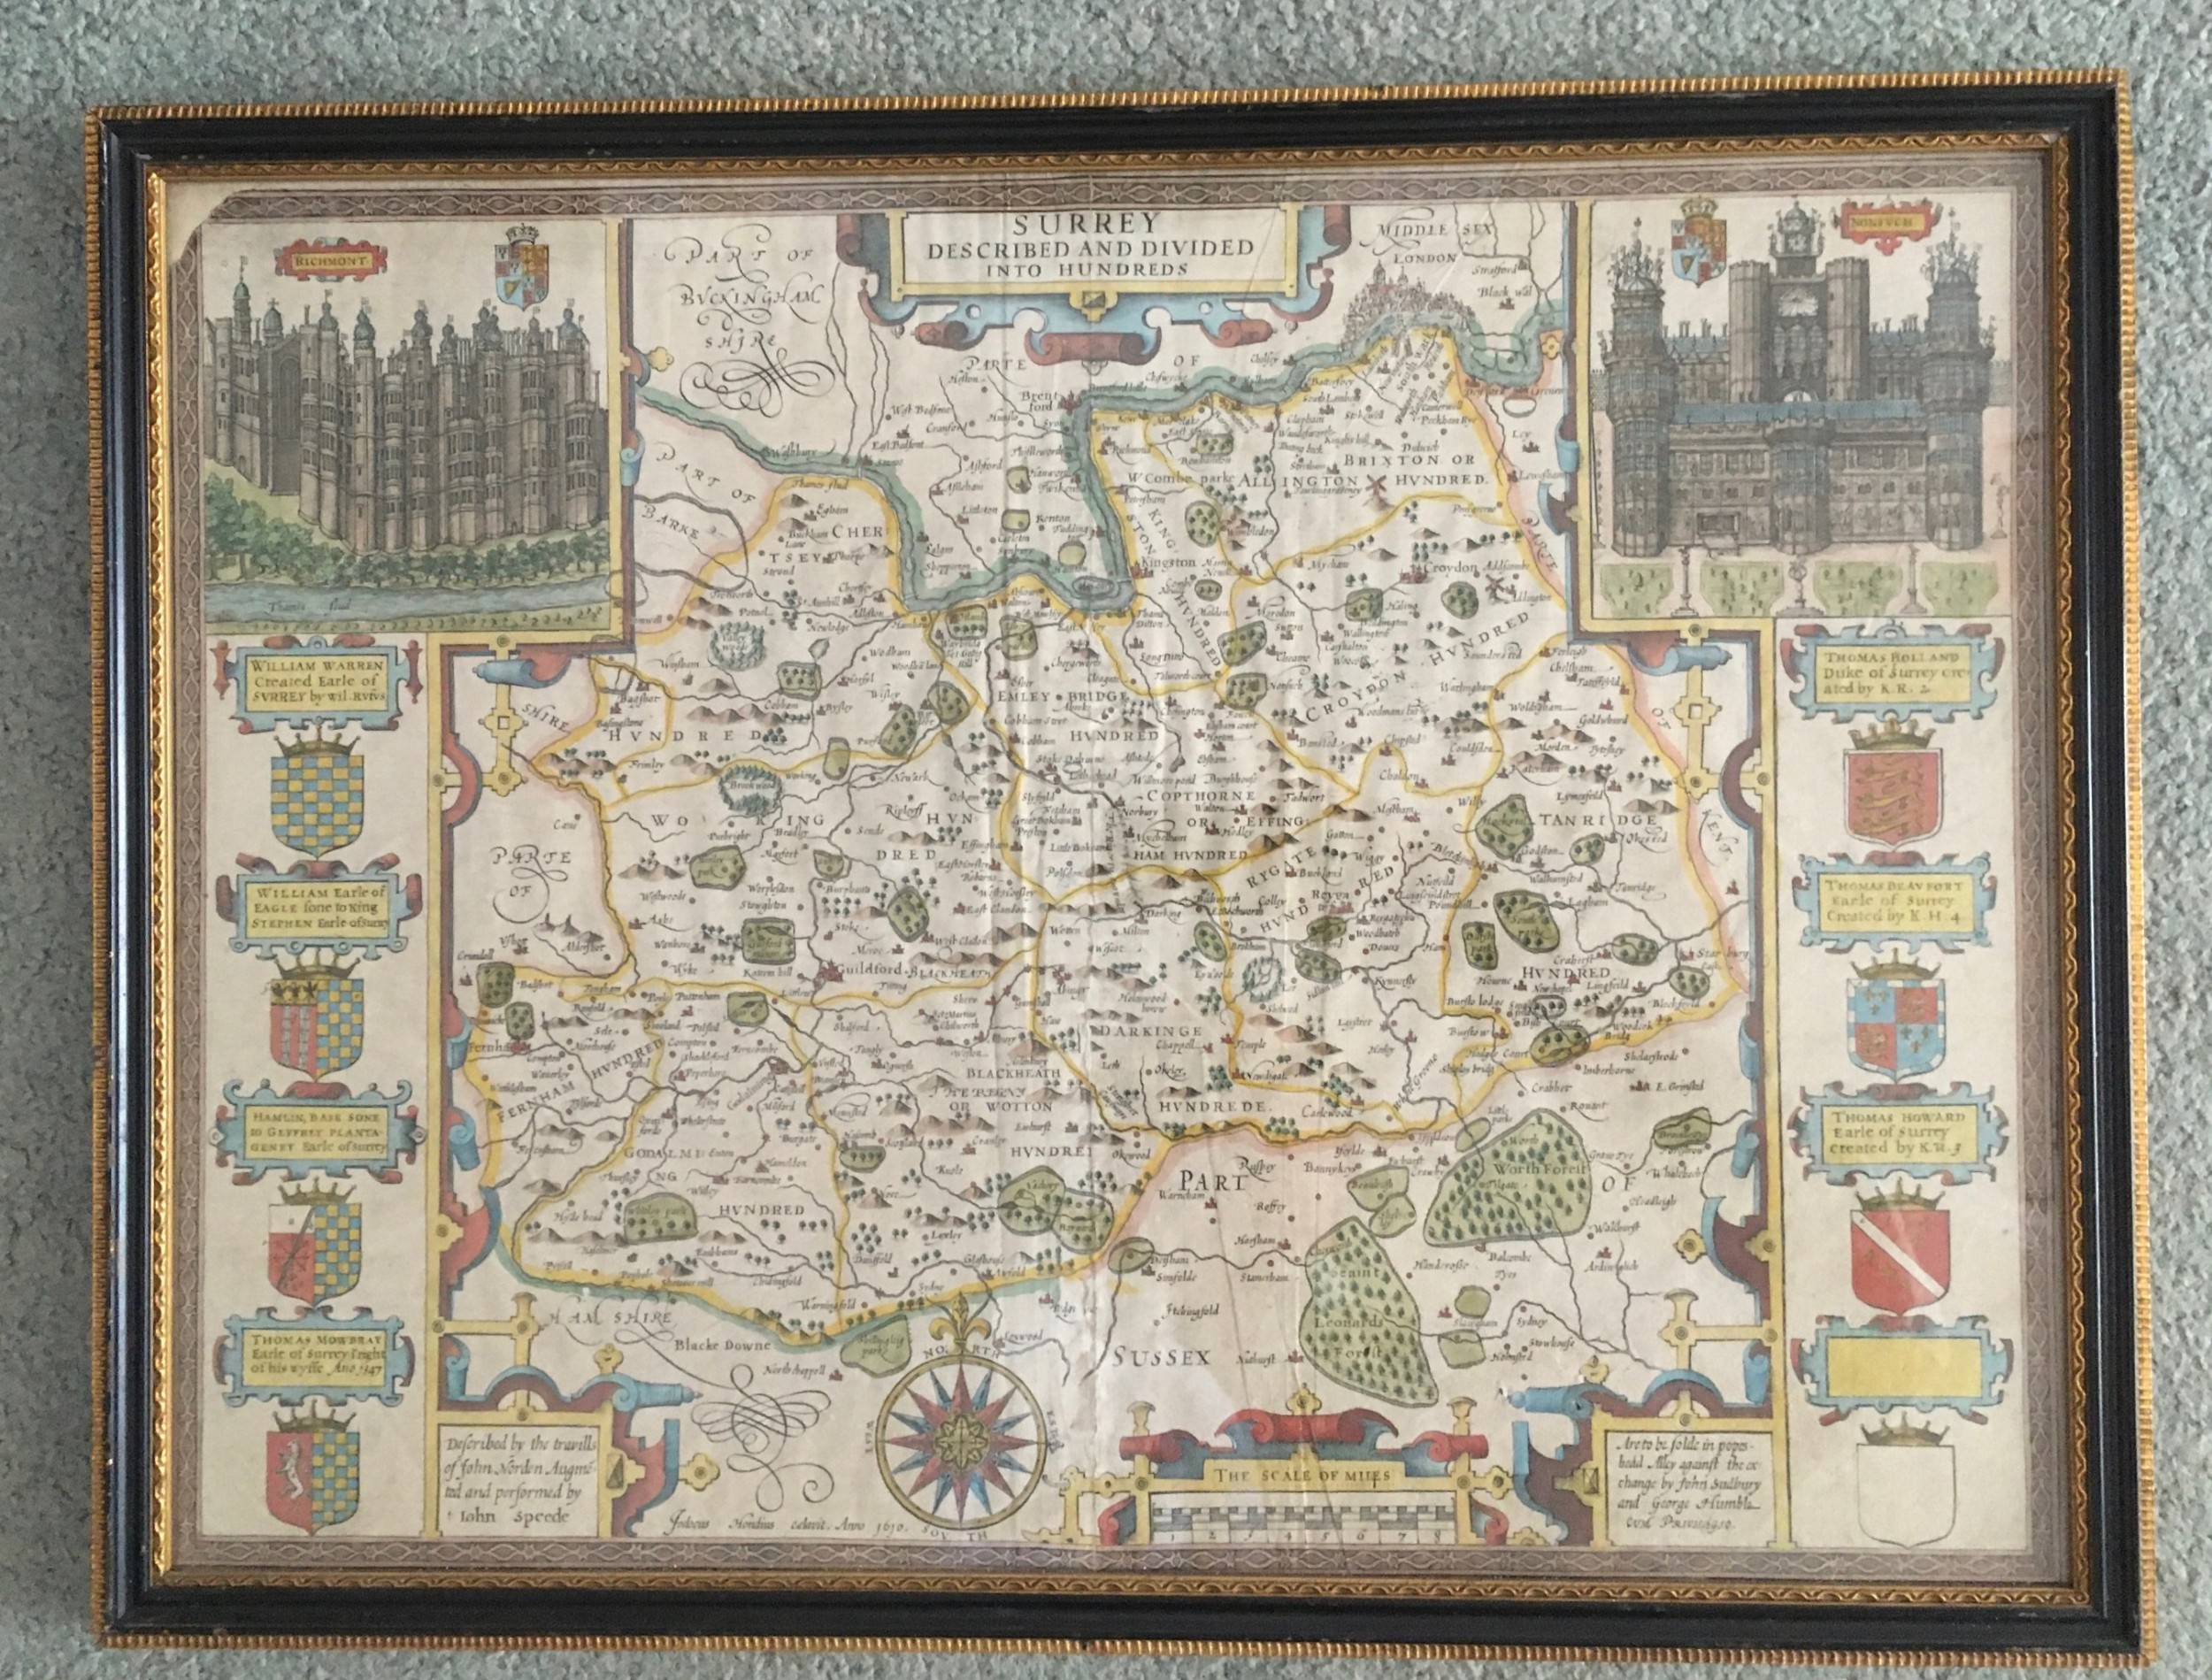 john speed map of surrey 1610